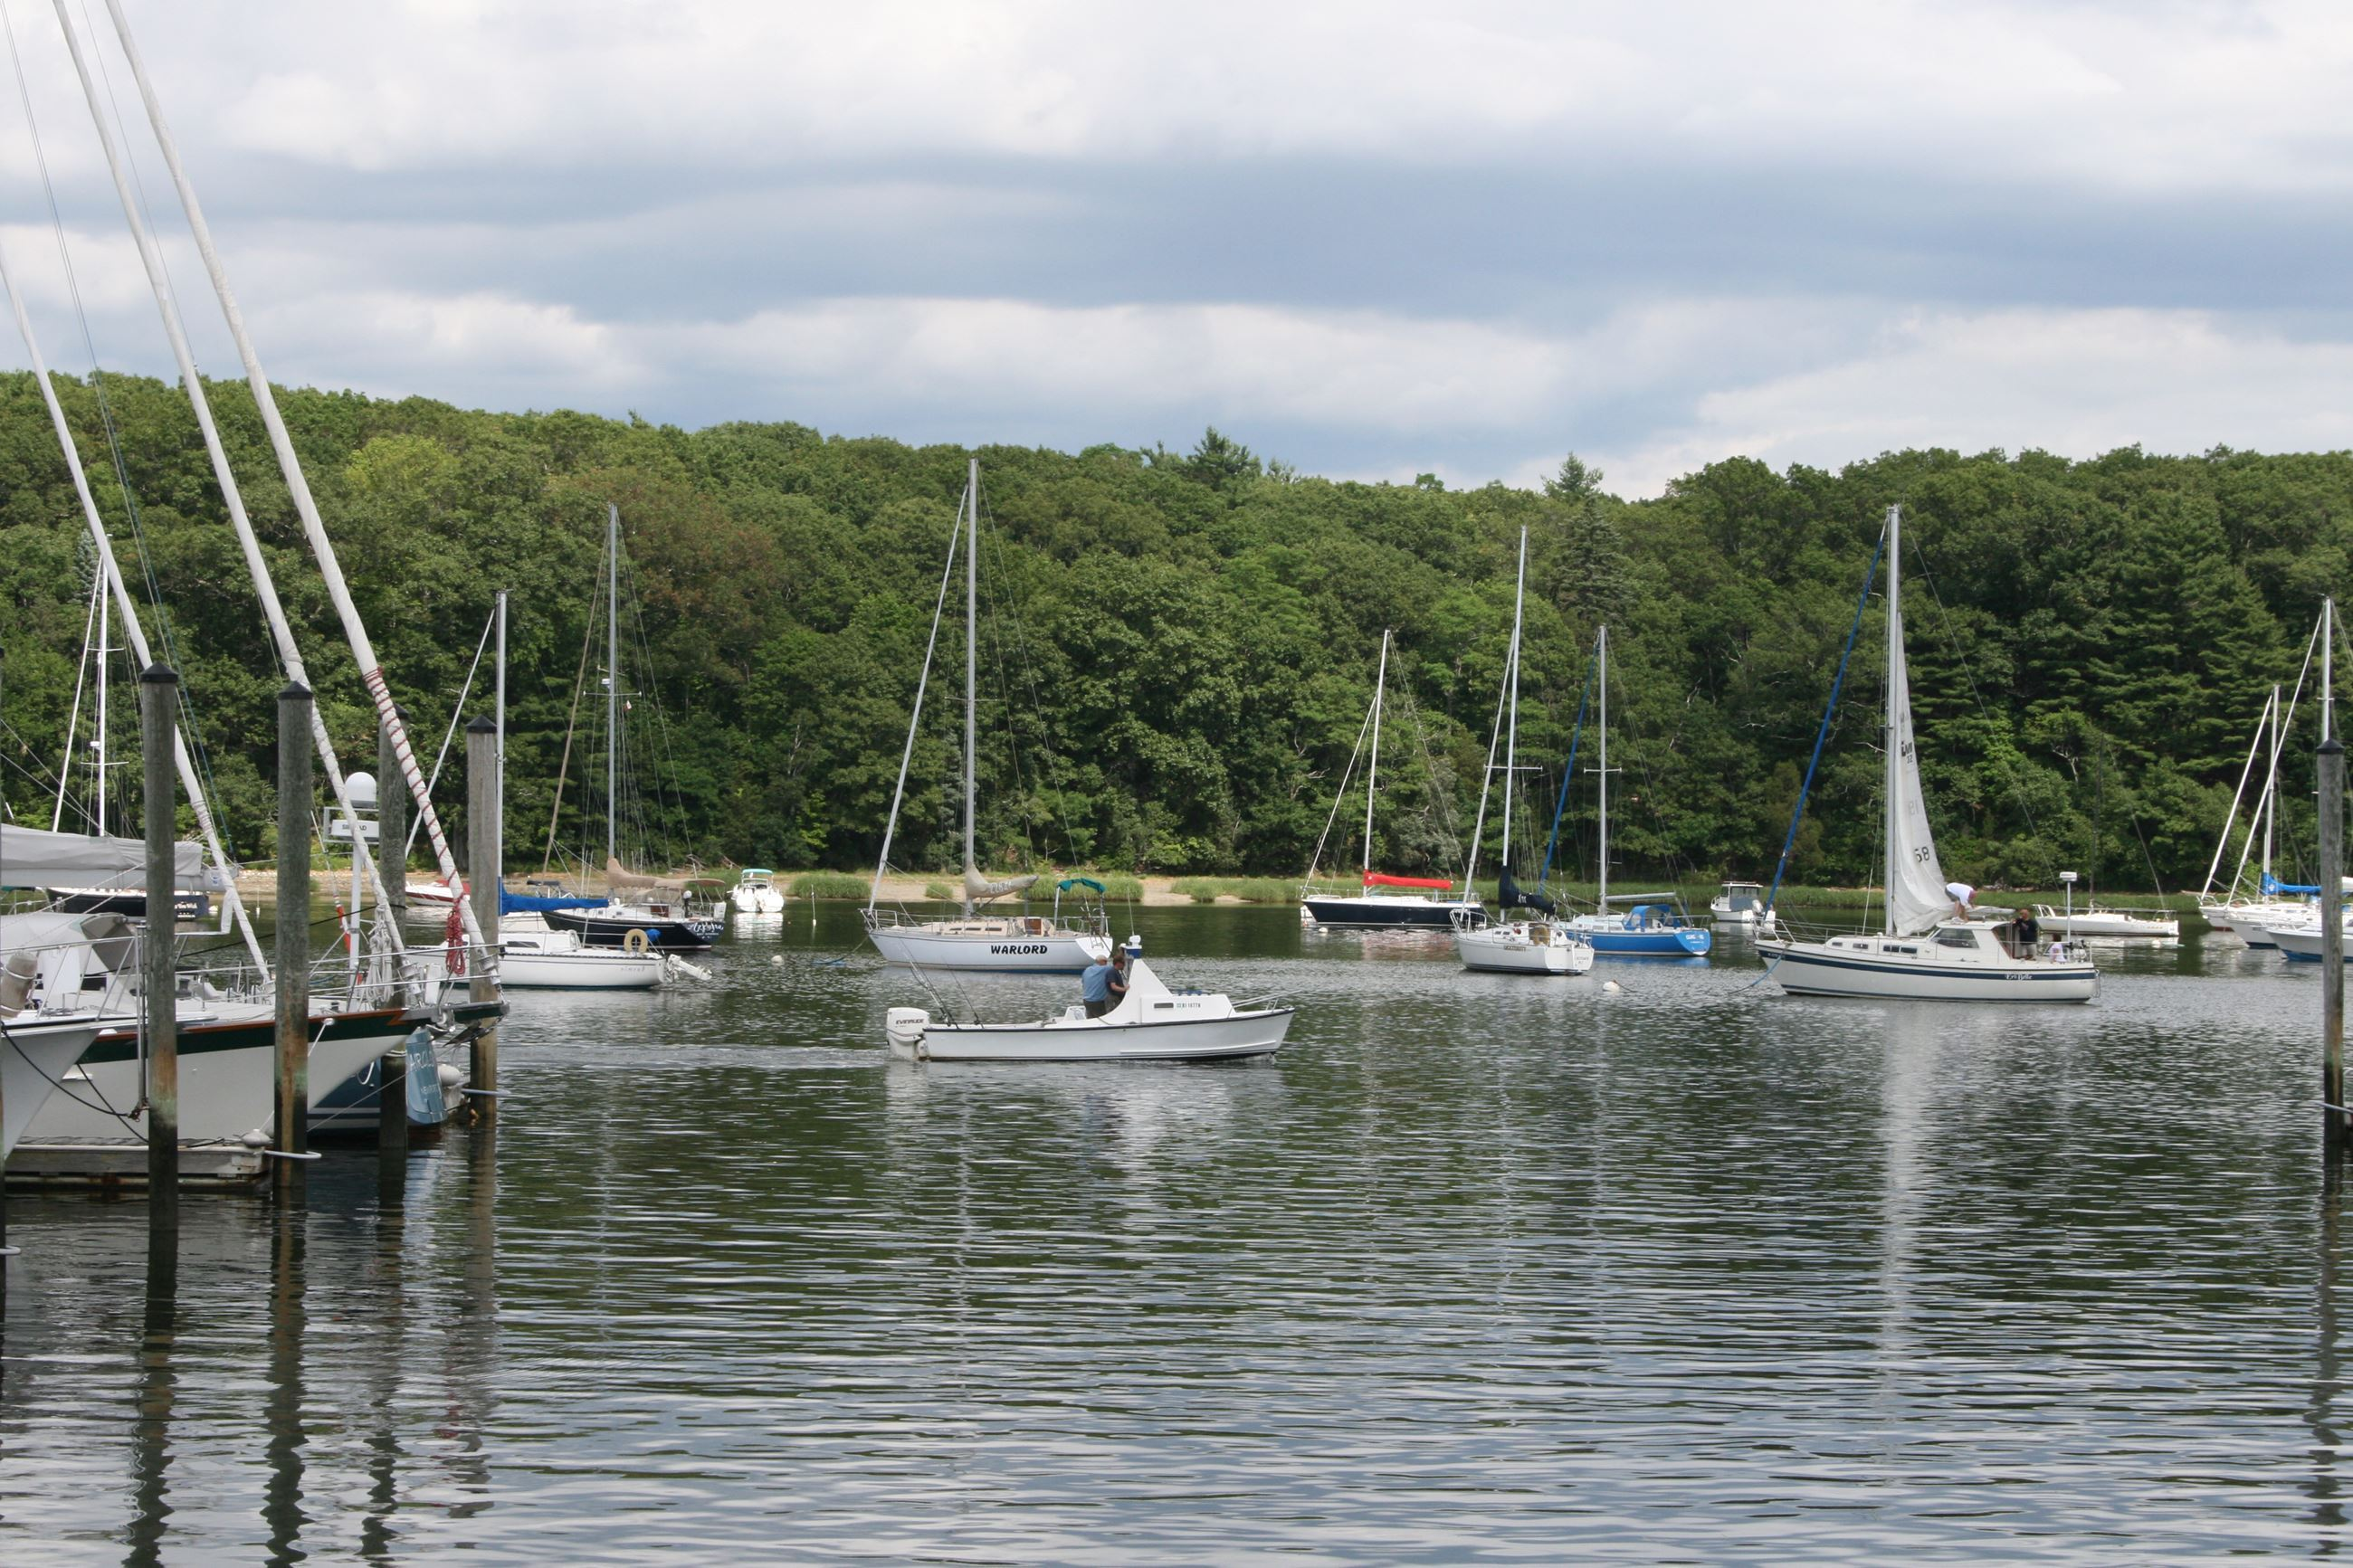 image of Greenwich Bay with boats on the water